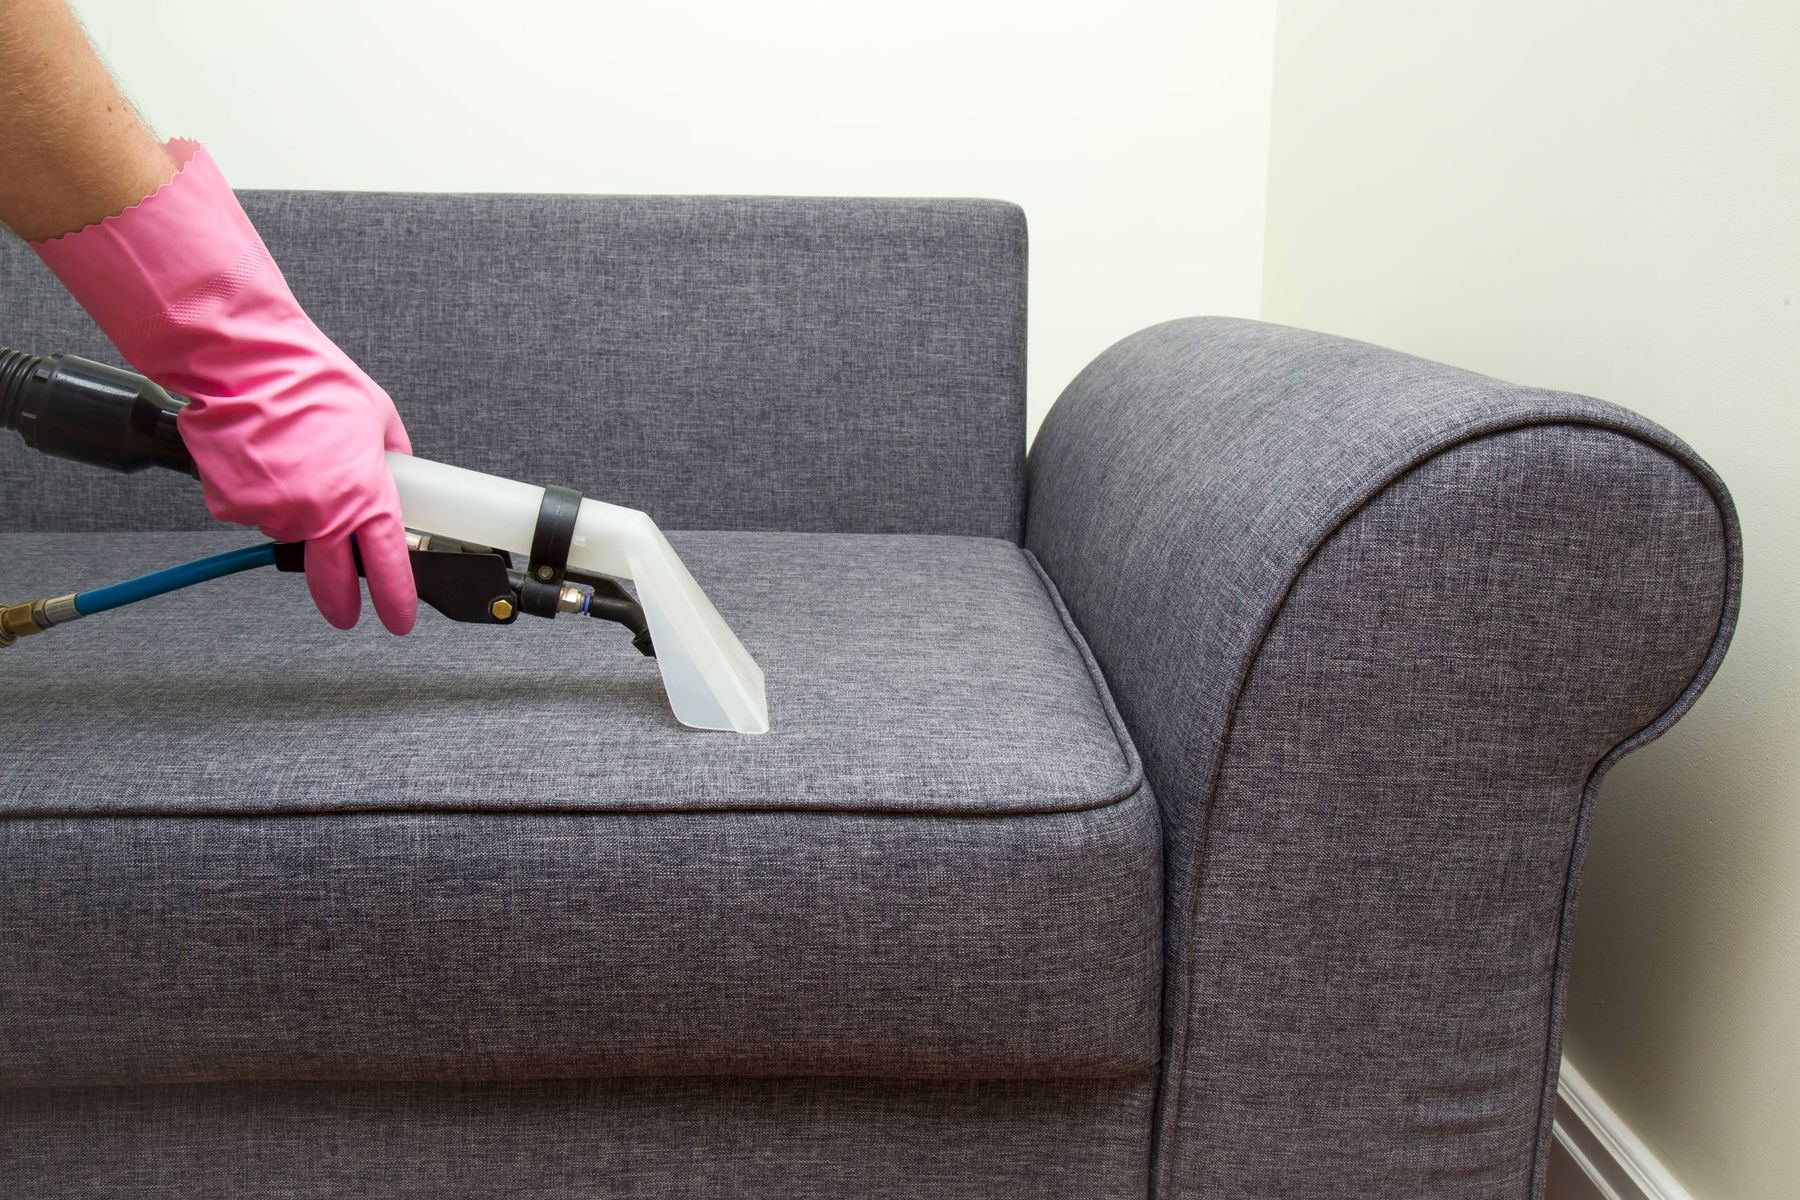 How to clean and remove stains from furniture